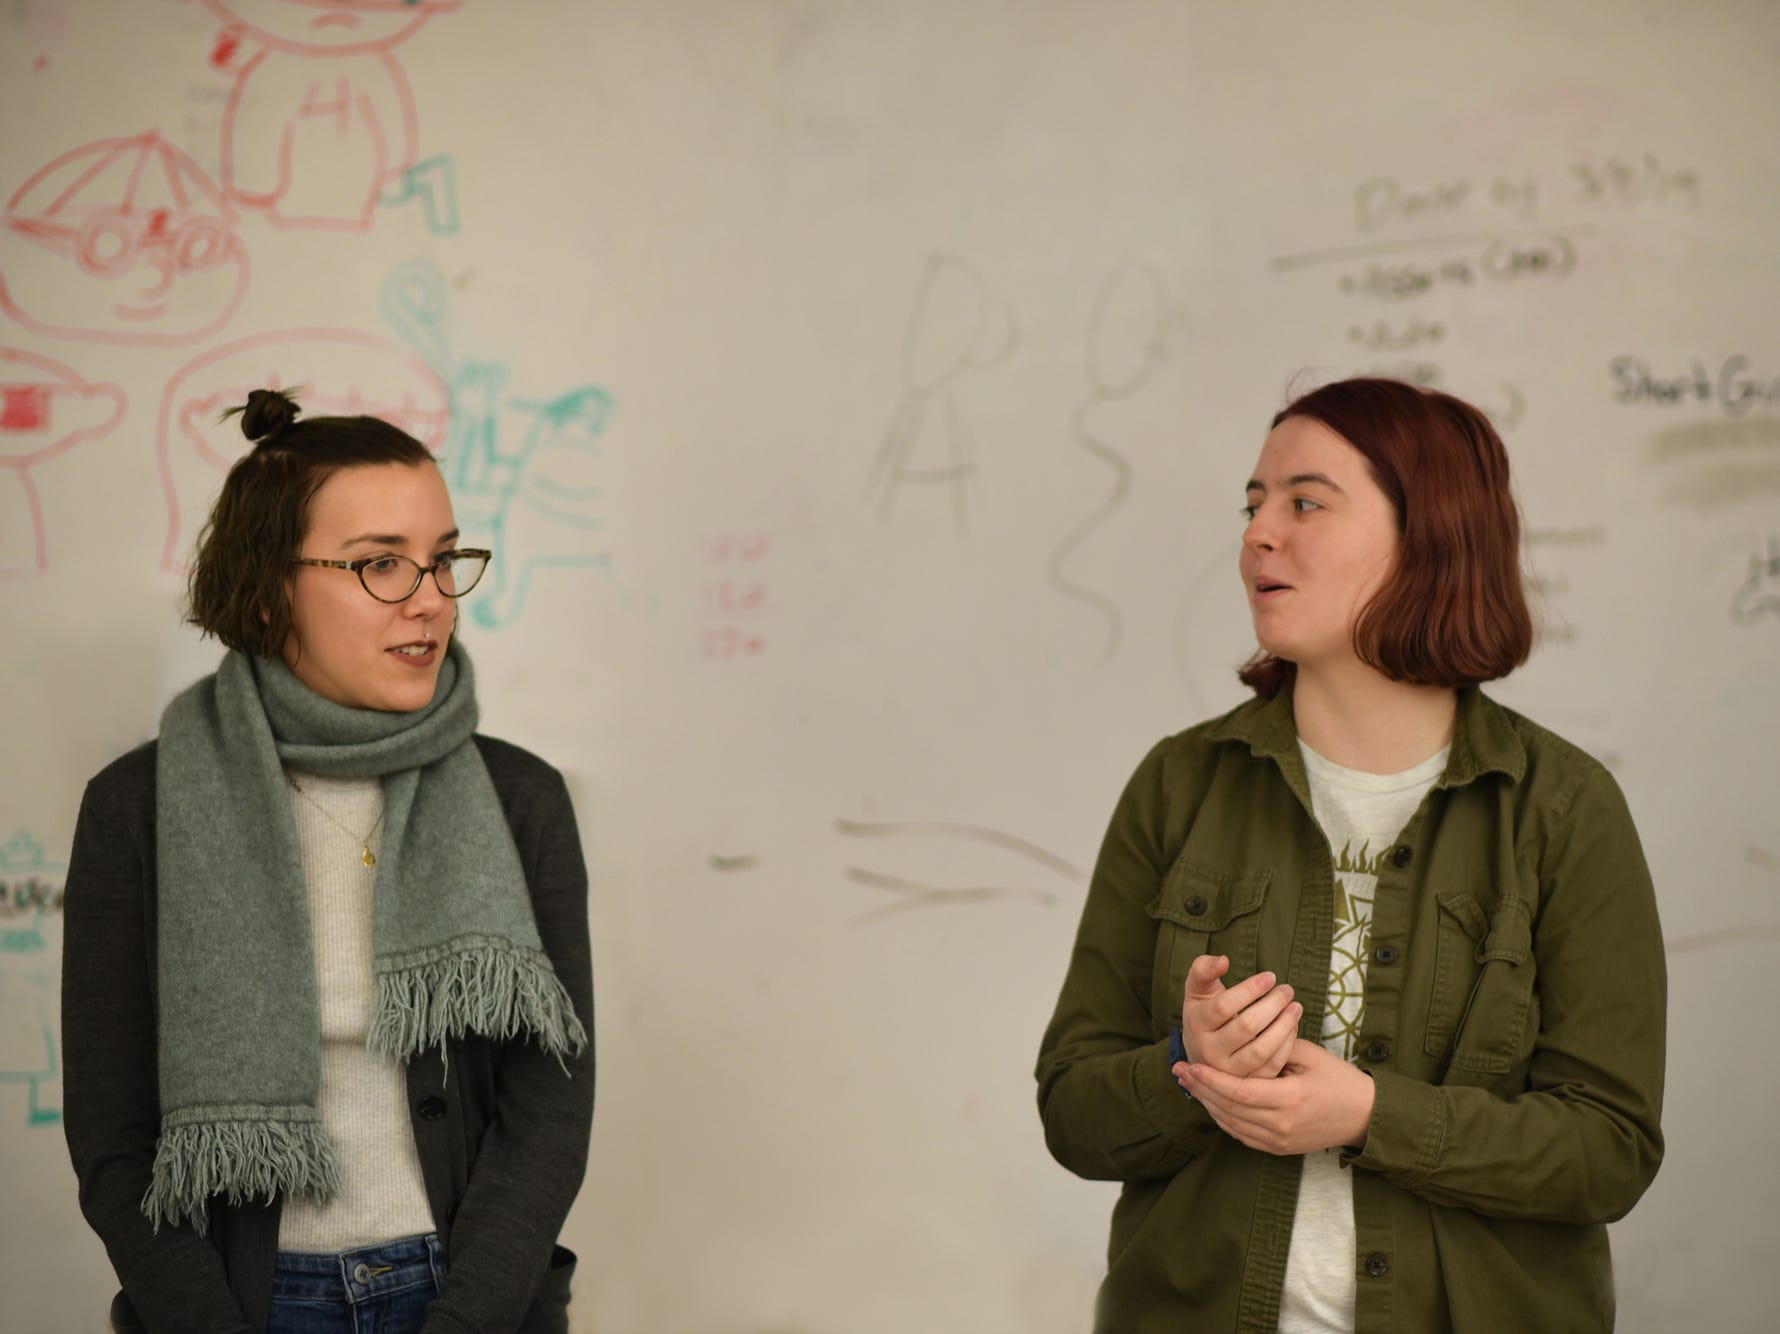 Champlain College seniors Amila Nuhodzic, left, with  Jennifer Carlin in a collaborative design classroom on March 5, 2019. Nuhodzic, of Burlington, co-founded local indie Fat Bird Studios, and helped create Querent, a game that uses tarot cards (illustrated by Nuhodzic). The group hopes to find a publisher at a conference this month.